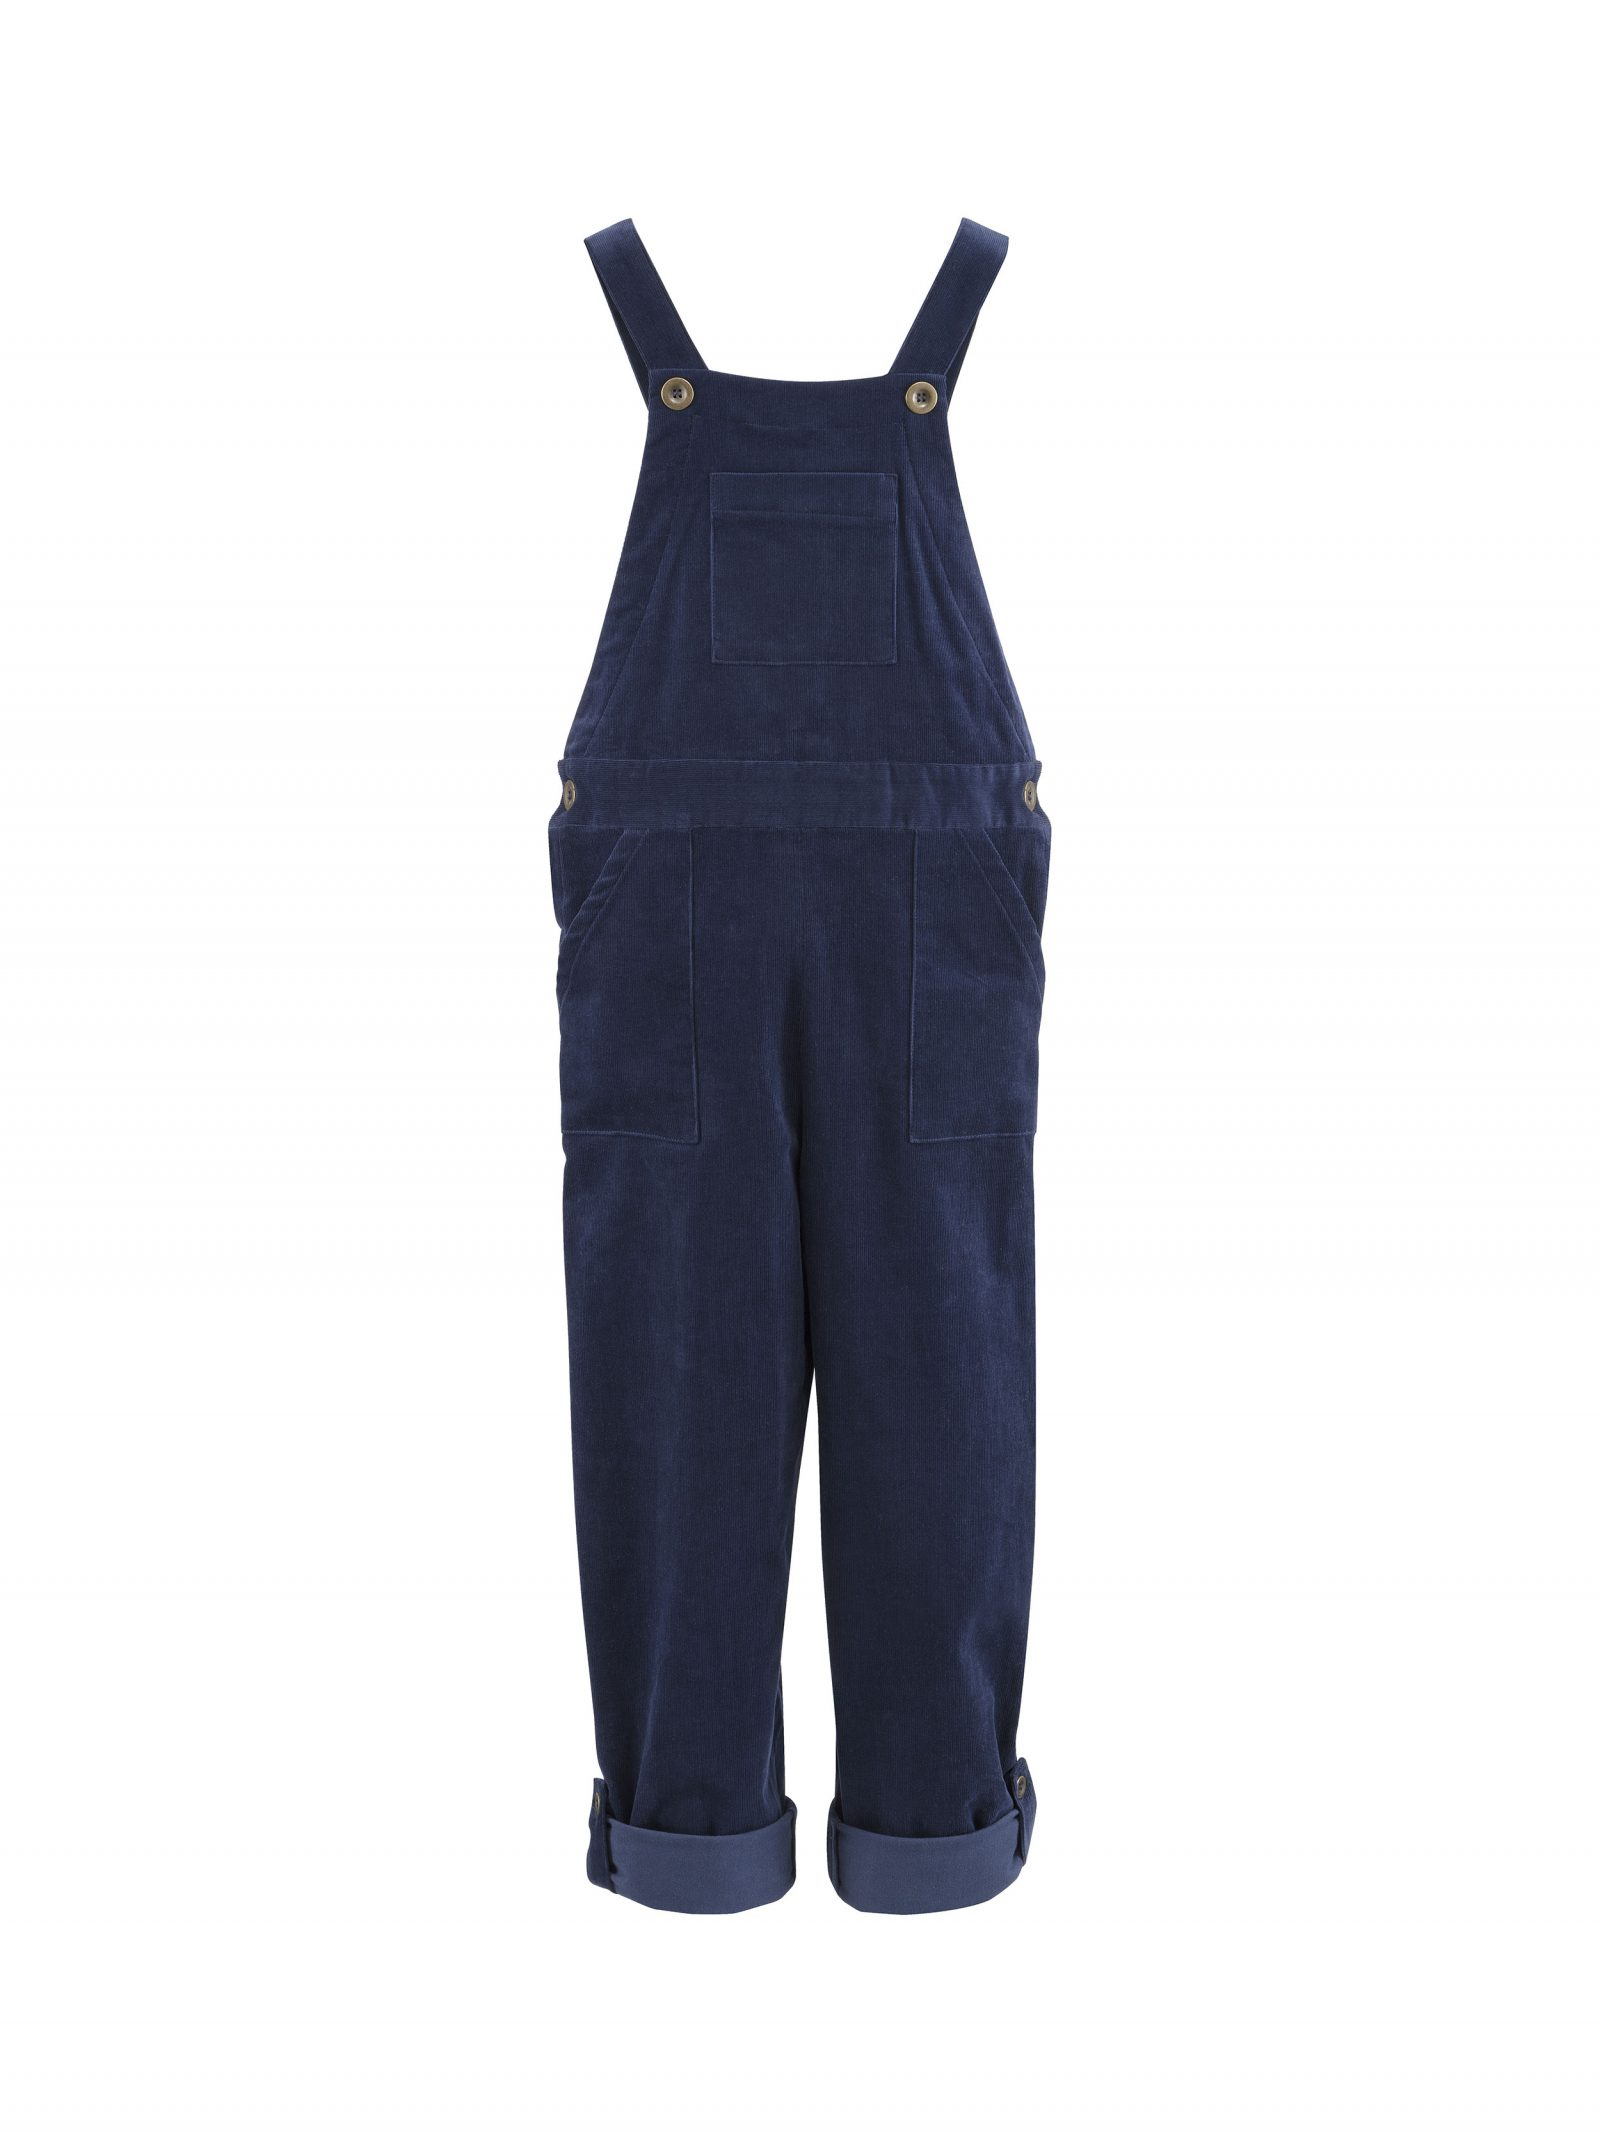 Maggie Dungarees in Blue - Front